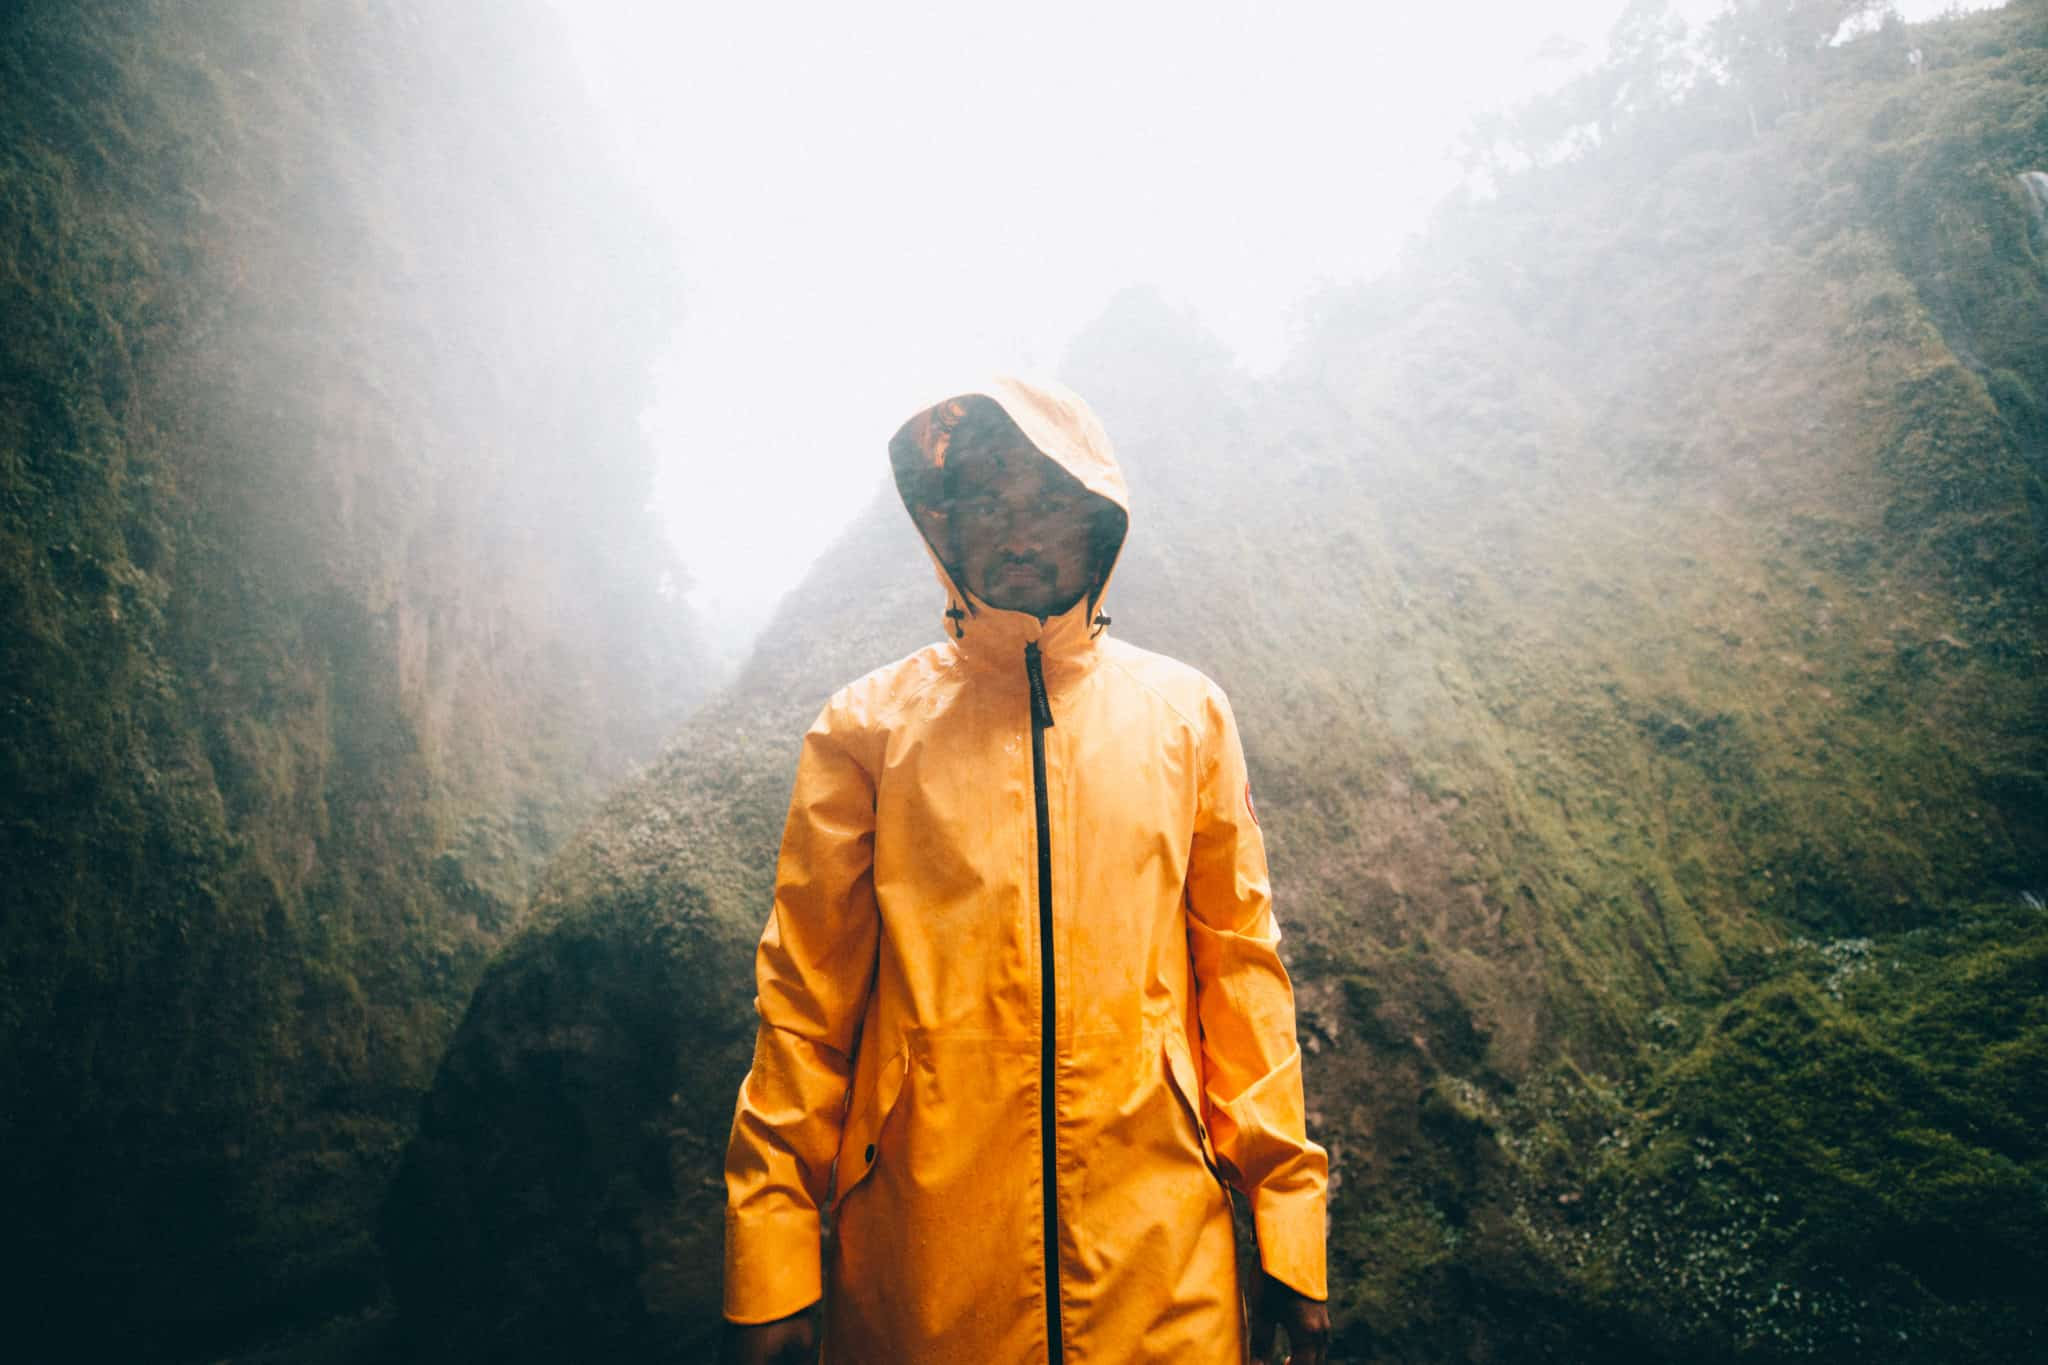 Berty wearing yellow raincoat at Tumpak Sewu Waterfall, East Java, Indonesia